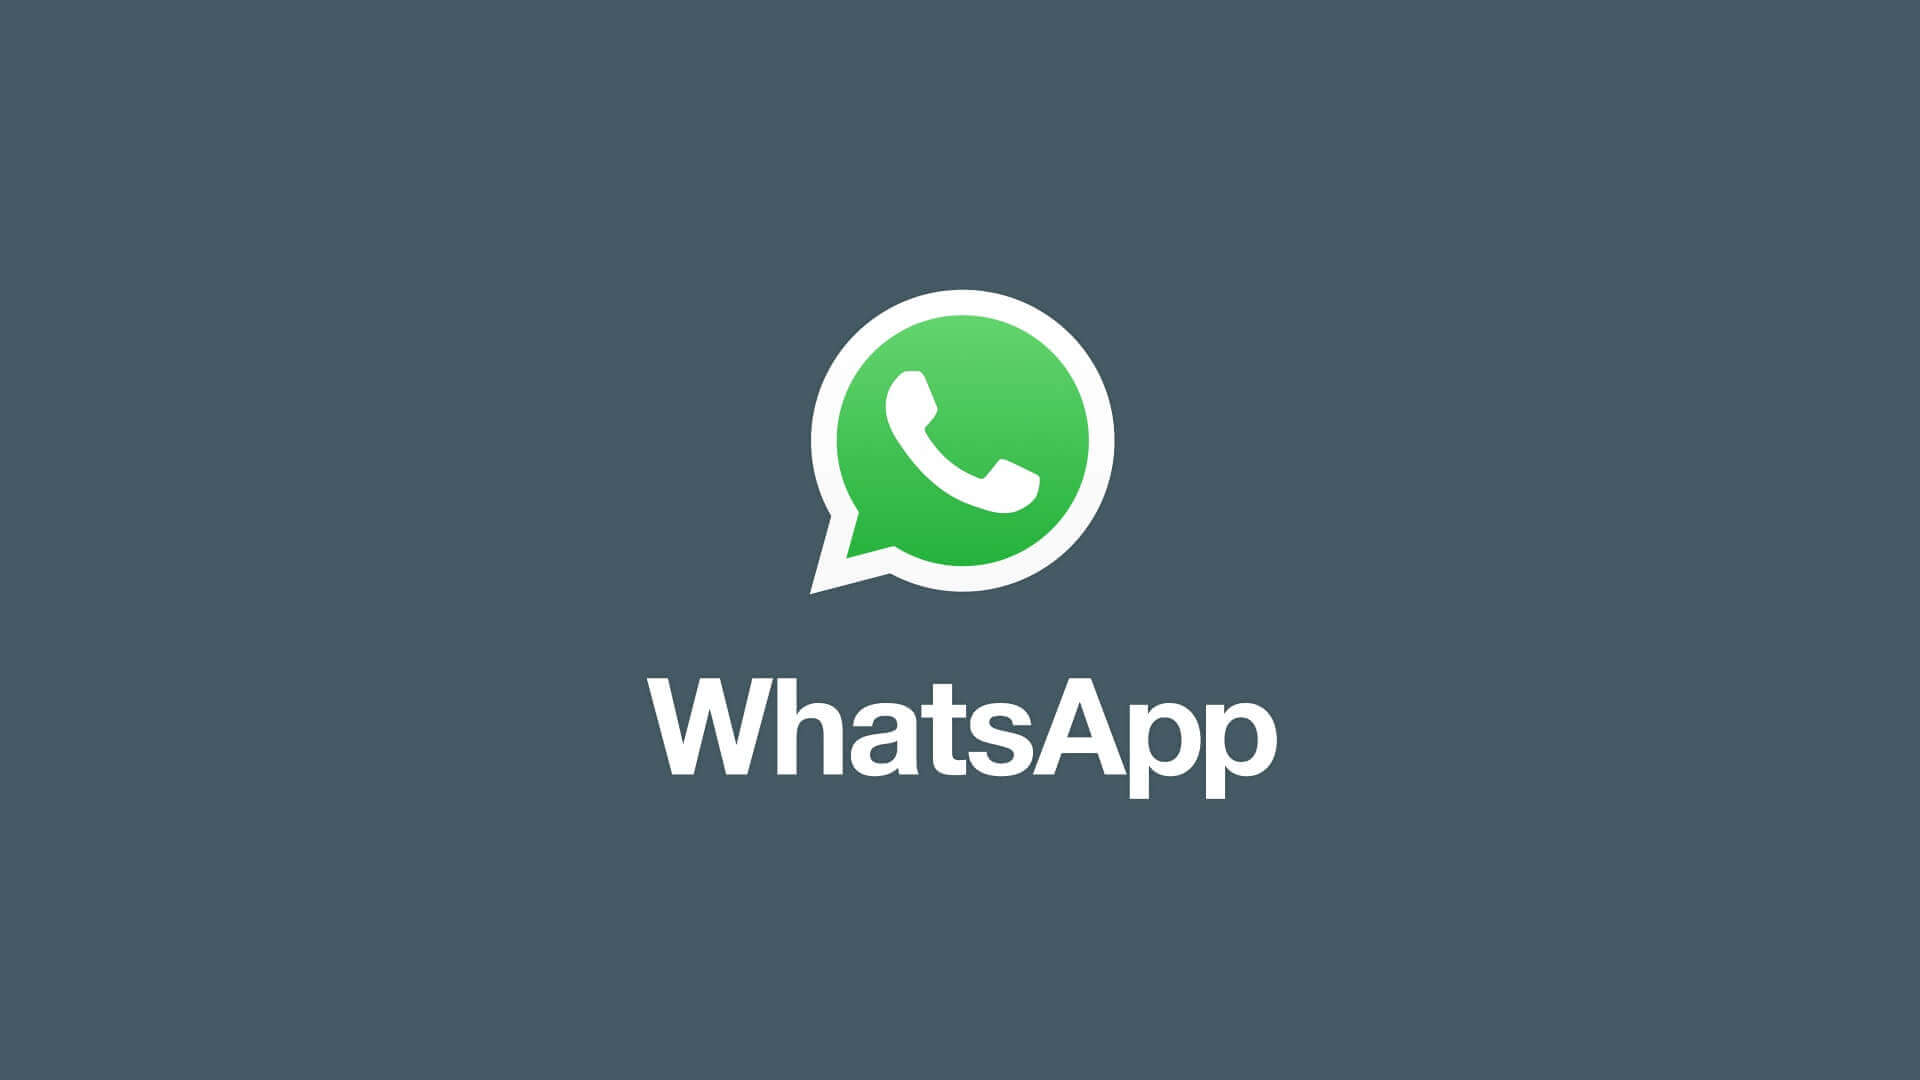 WhatsApp future vision: 'Private commerce' and payments